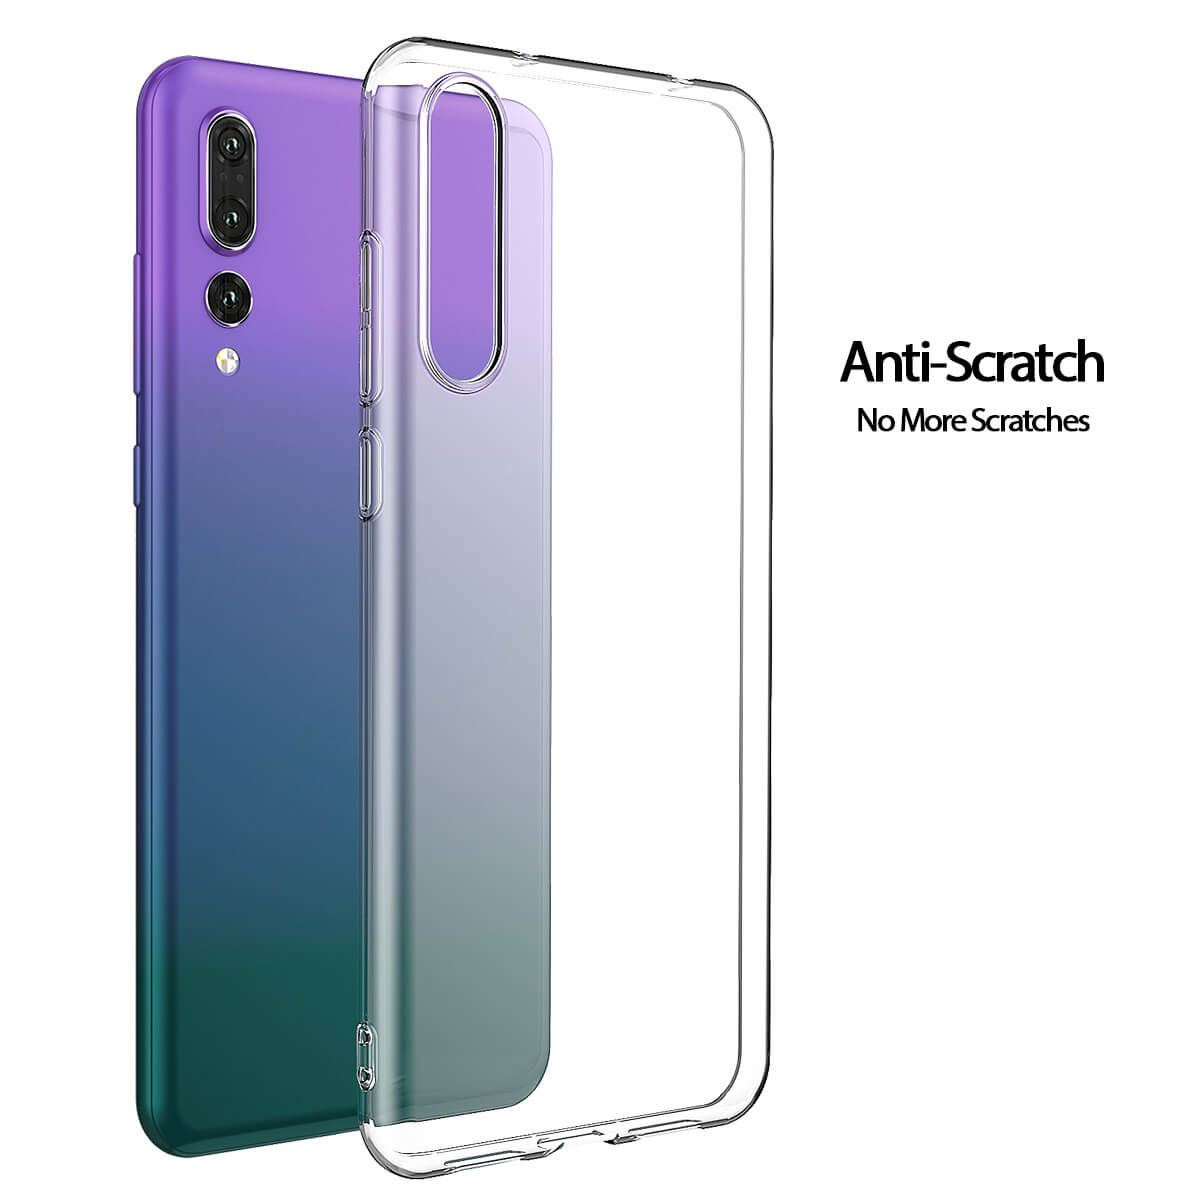 Shockproof-Silicone-Protective-Clear-Gel-Cover-Case-For-Huawei-P20-Pro-P-Smart thumbnail 17